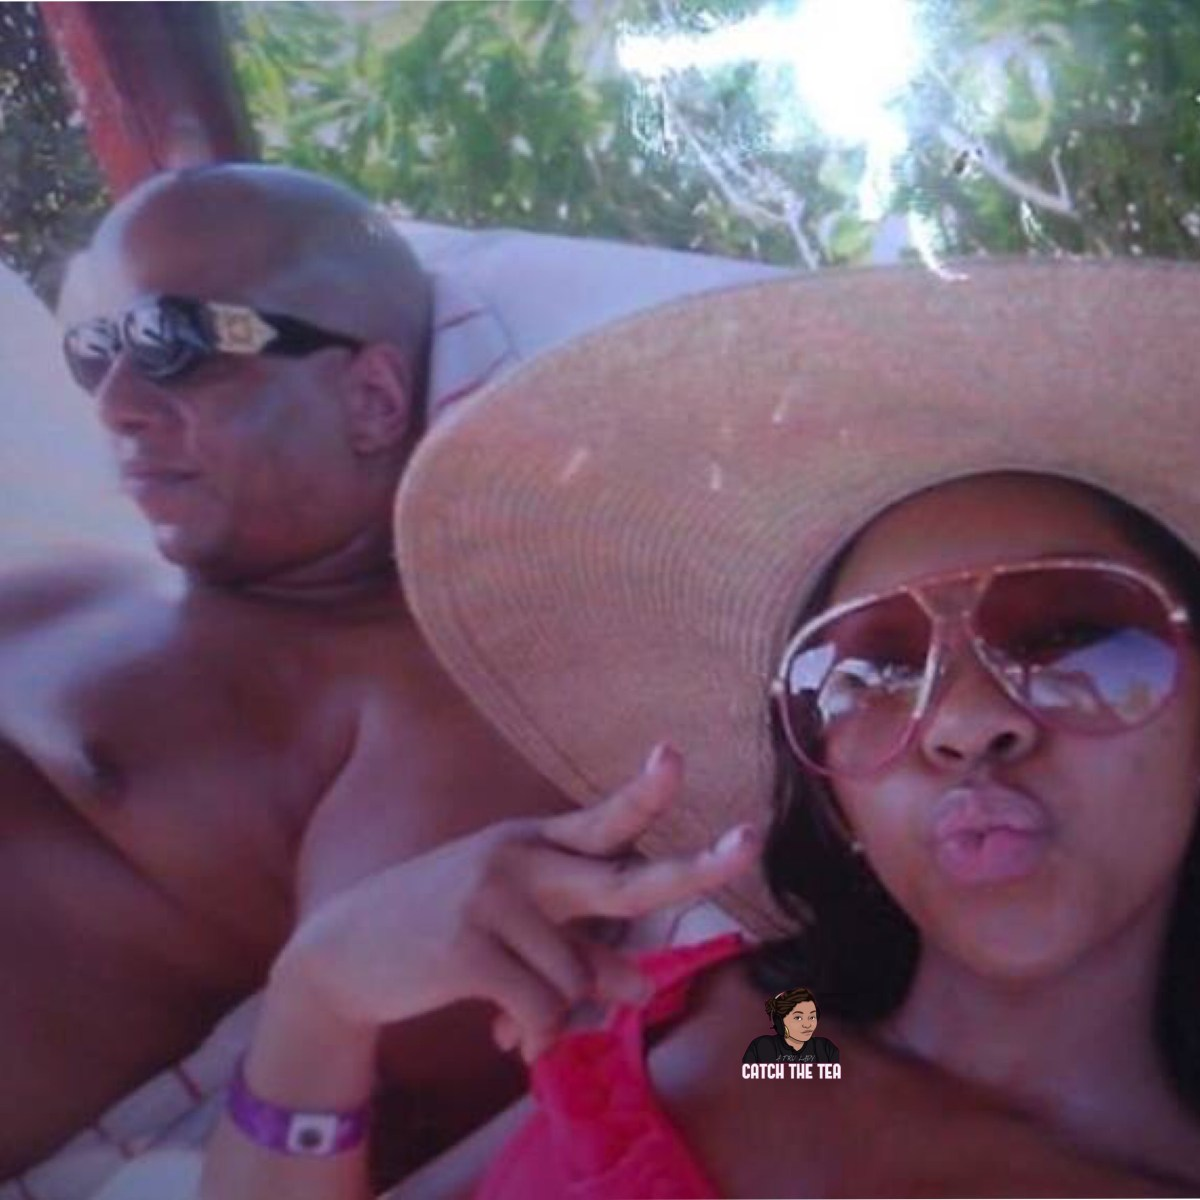 Pictures surface of Wendy Williams Husband Kevin and his ALLEGED Mistress